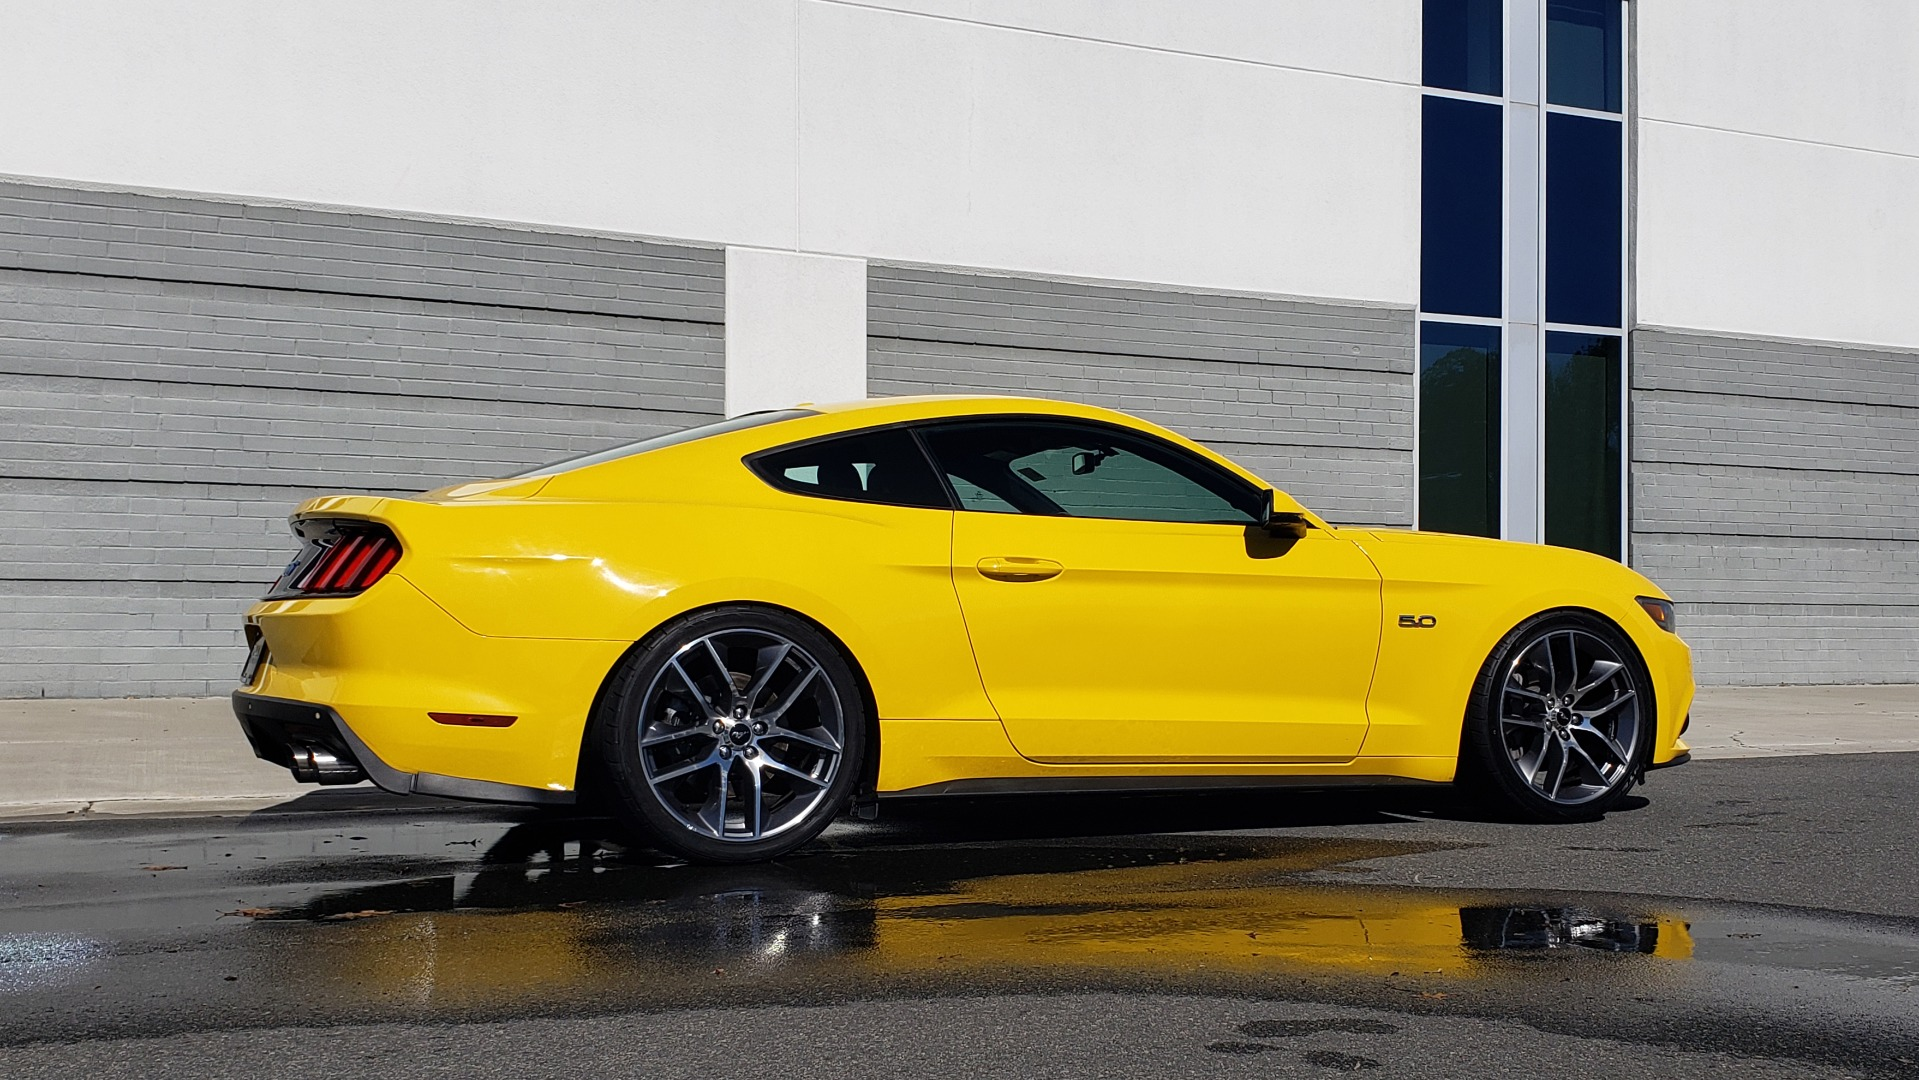 Used 2015 Ford MUSTANG GT 5.0L COUPE PREMIUM / 6-SPD MAN / SHAKER AUDIO / NAV for sale Sold at Formula Imports in Charlotte NC 28227 9